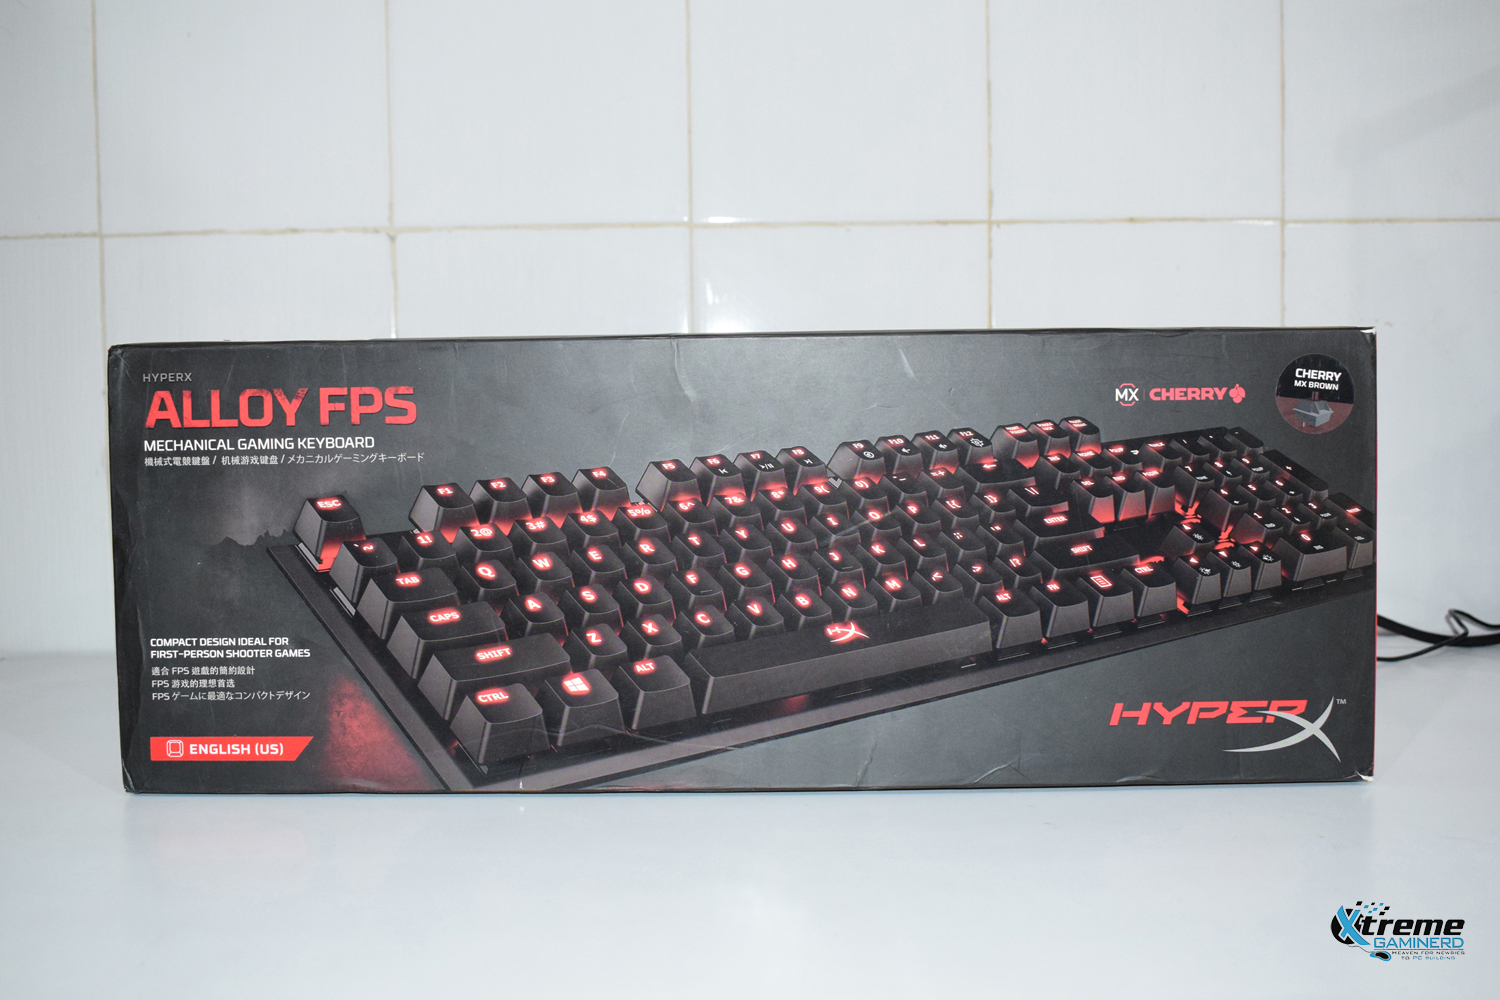 HyperX Alloy FPS mechanical keyboard 1